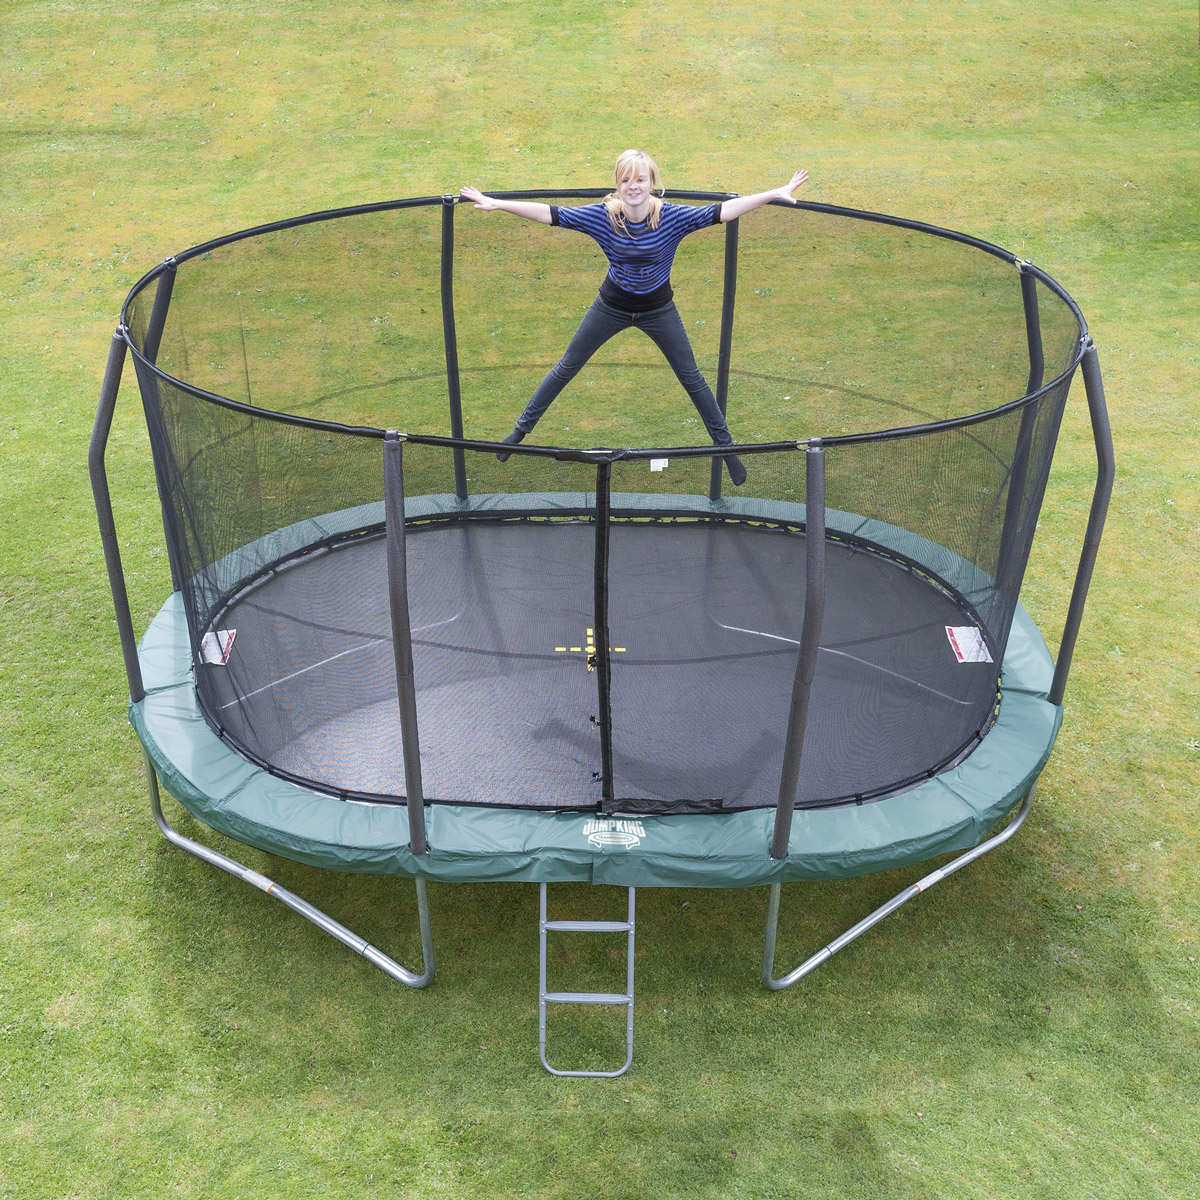 oval trampolin ovalpod 13 4 m jumpking trampoliner. Black Bedroom Furniture Sets. Home Design Ideas